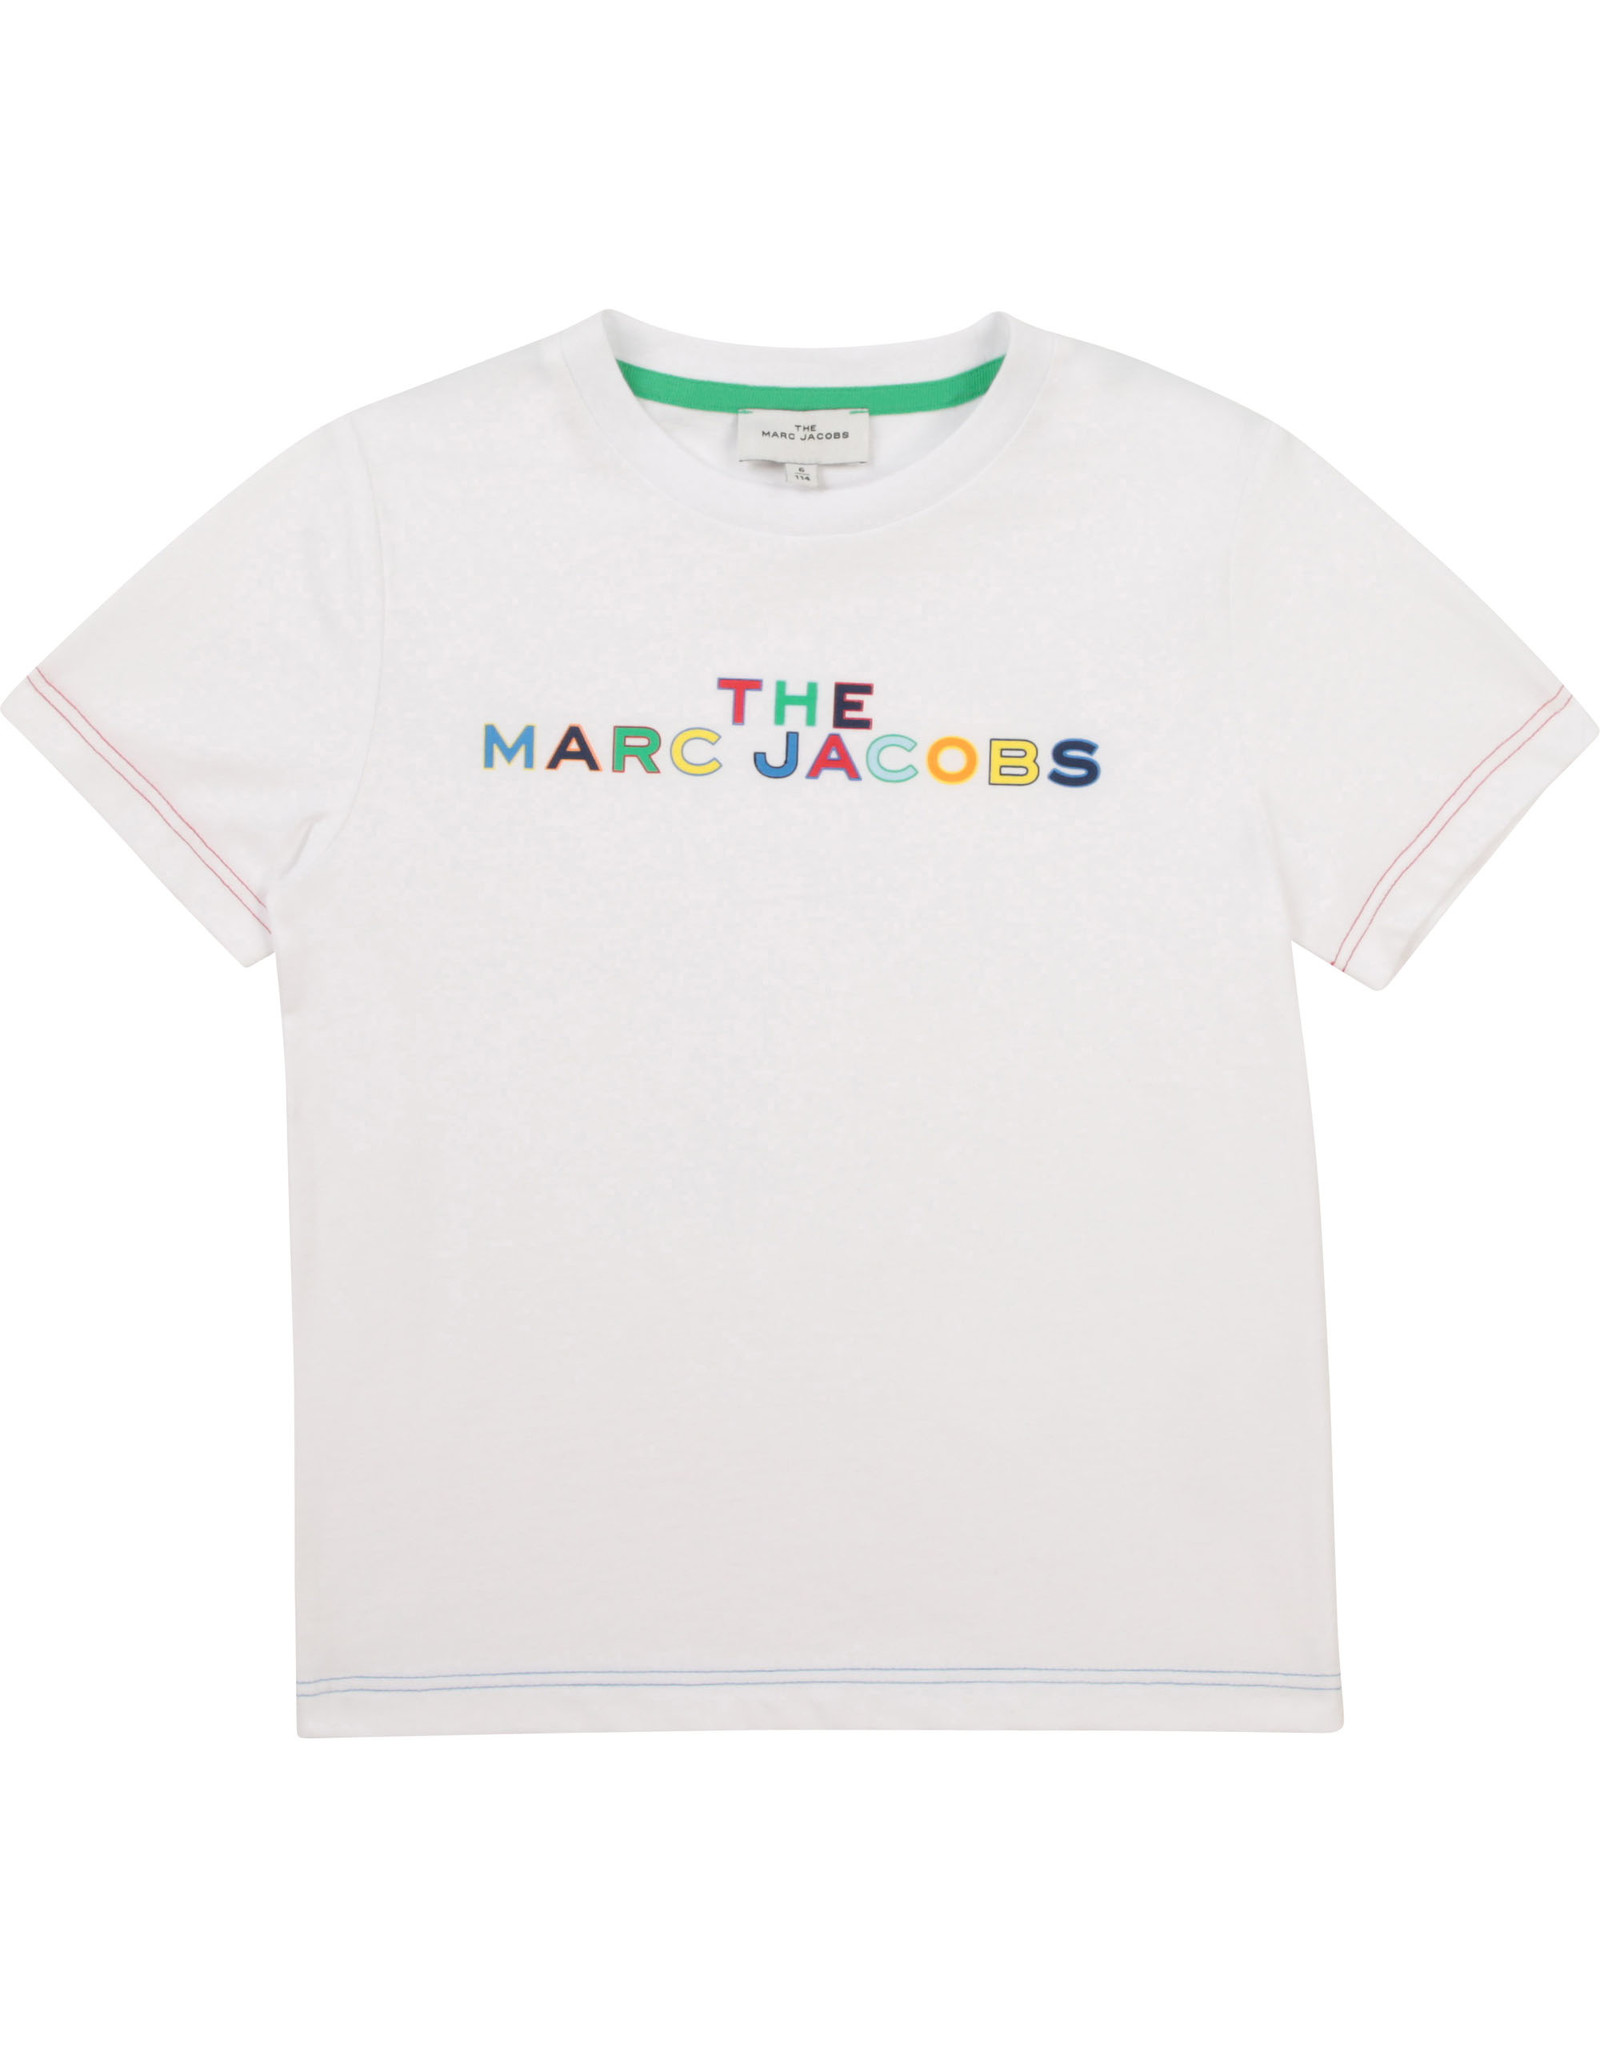 The Marc Jacobs TMJ SS21 W25467 T-shirt